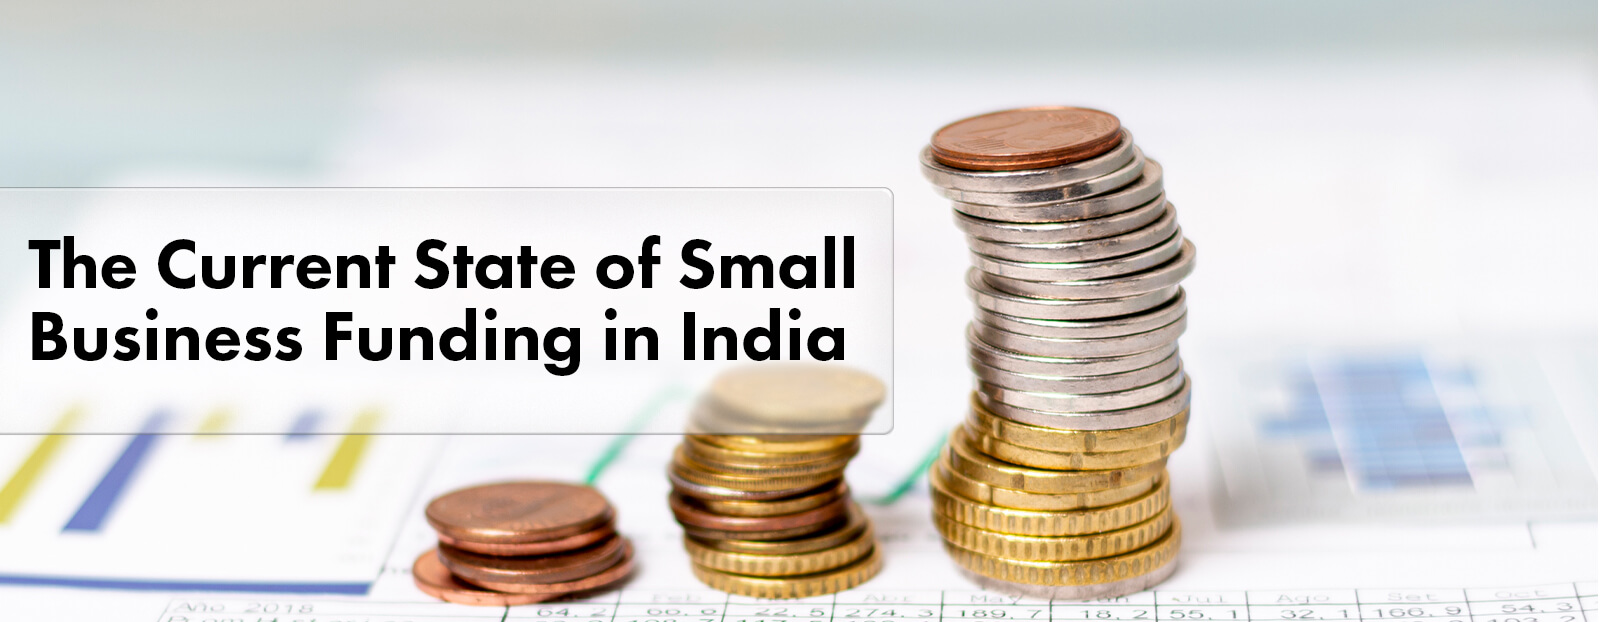 The Current State of Small Business Funding in India